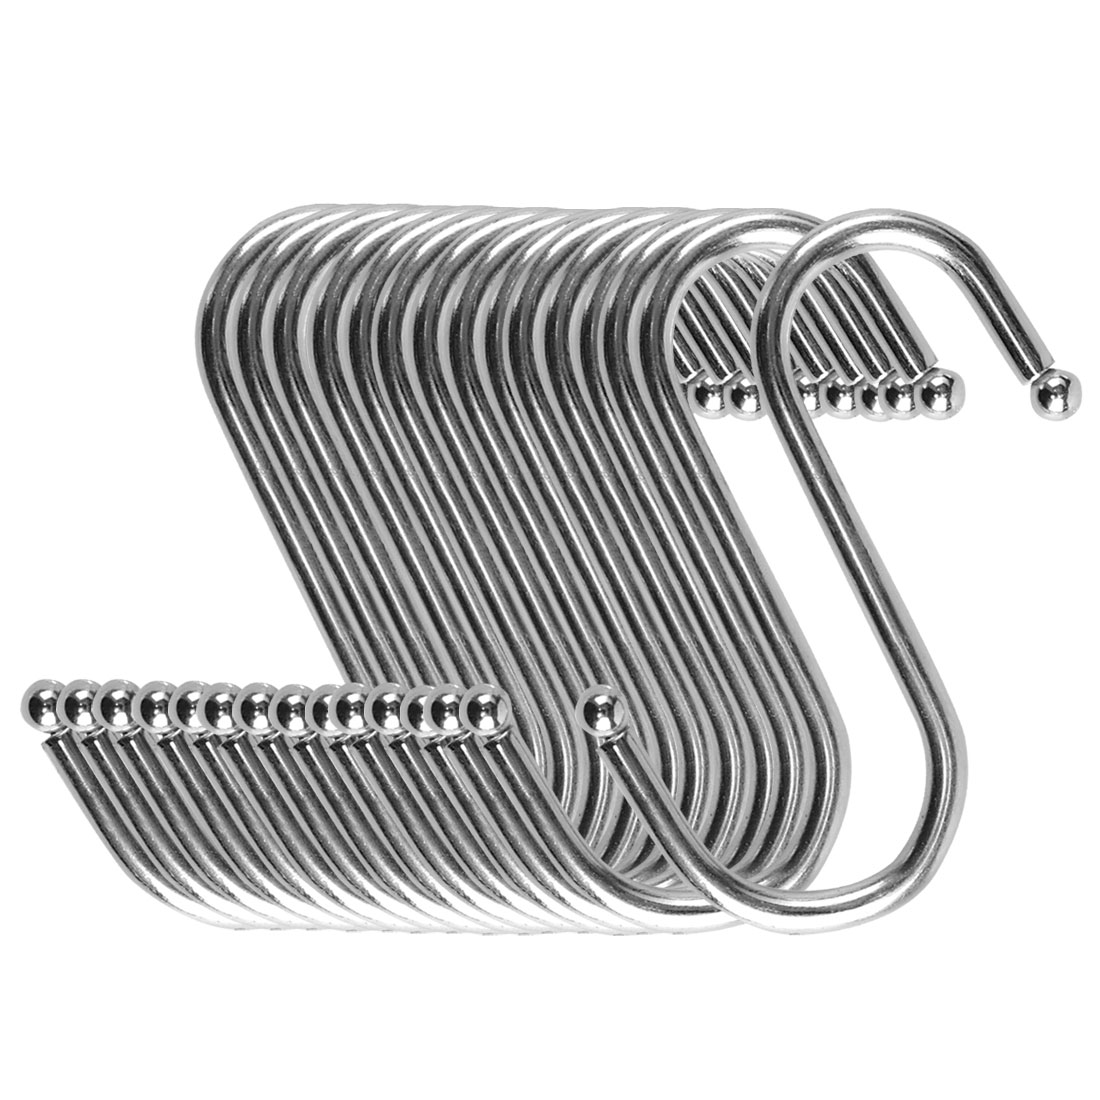 S Shape Hook Rack Stainless Steel for Kitchenware Clothes Towel Holder 15 Pack